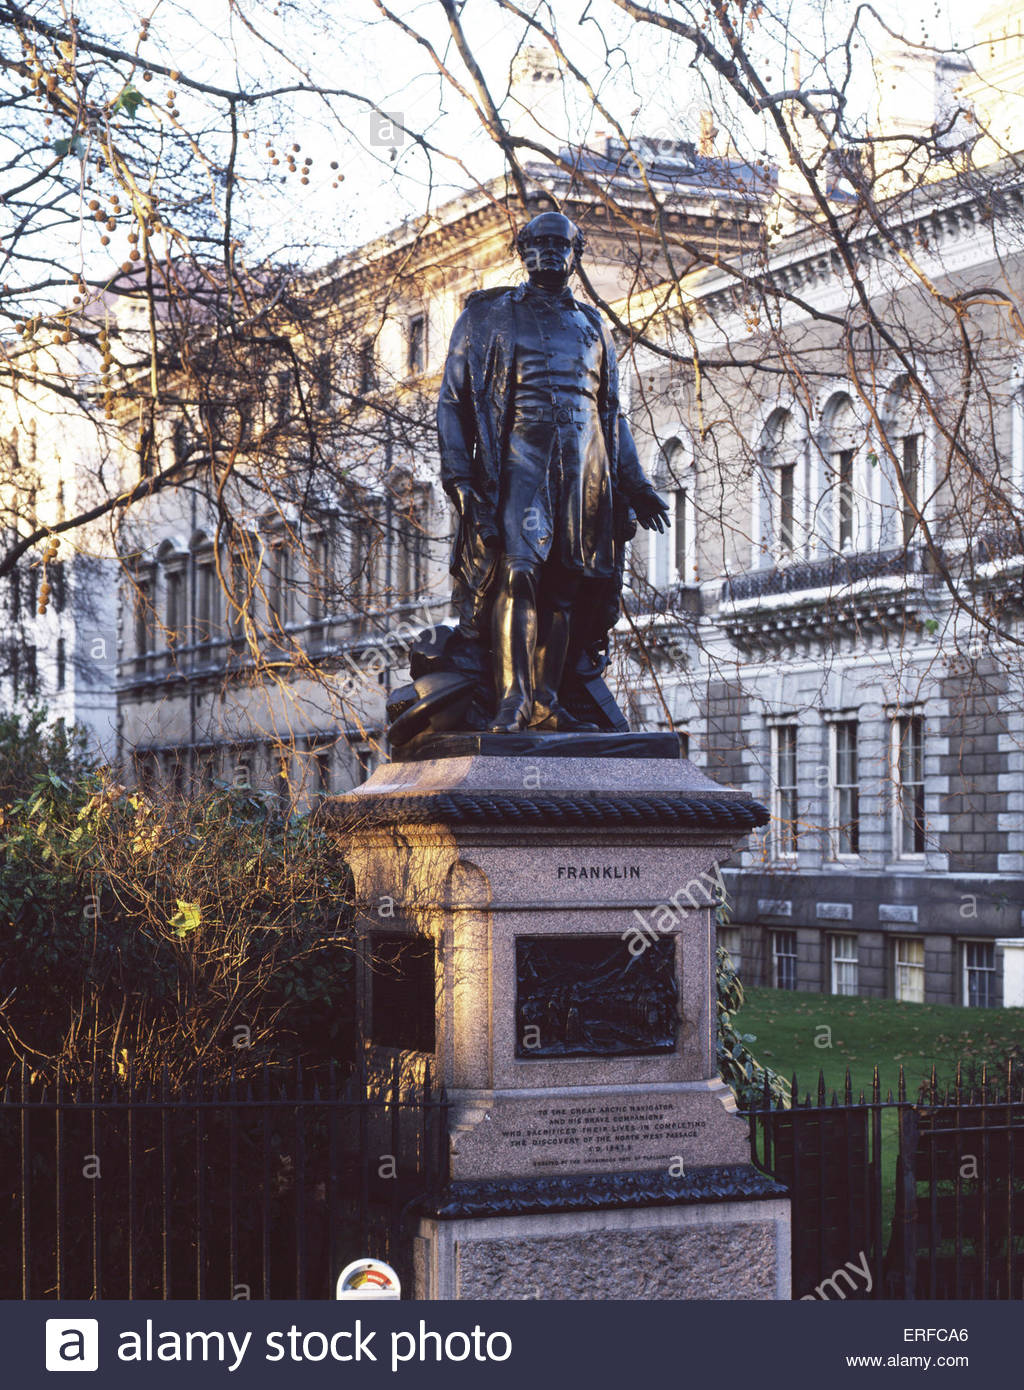 Statue of Sir John Franklin, British Royal Navy Officer and Arctic explorer, who disappeared on his last voyage - Stock Image